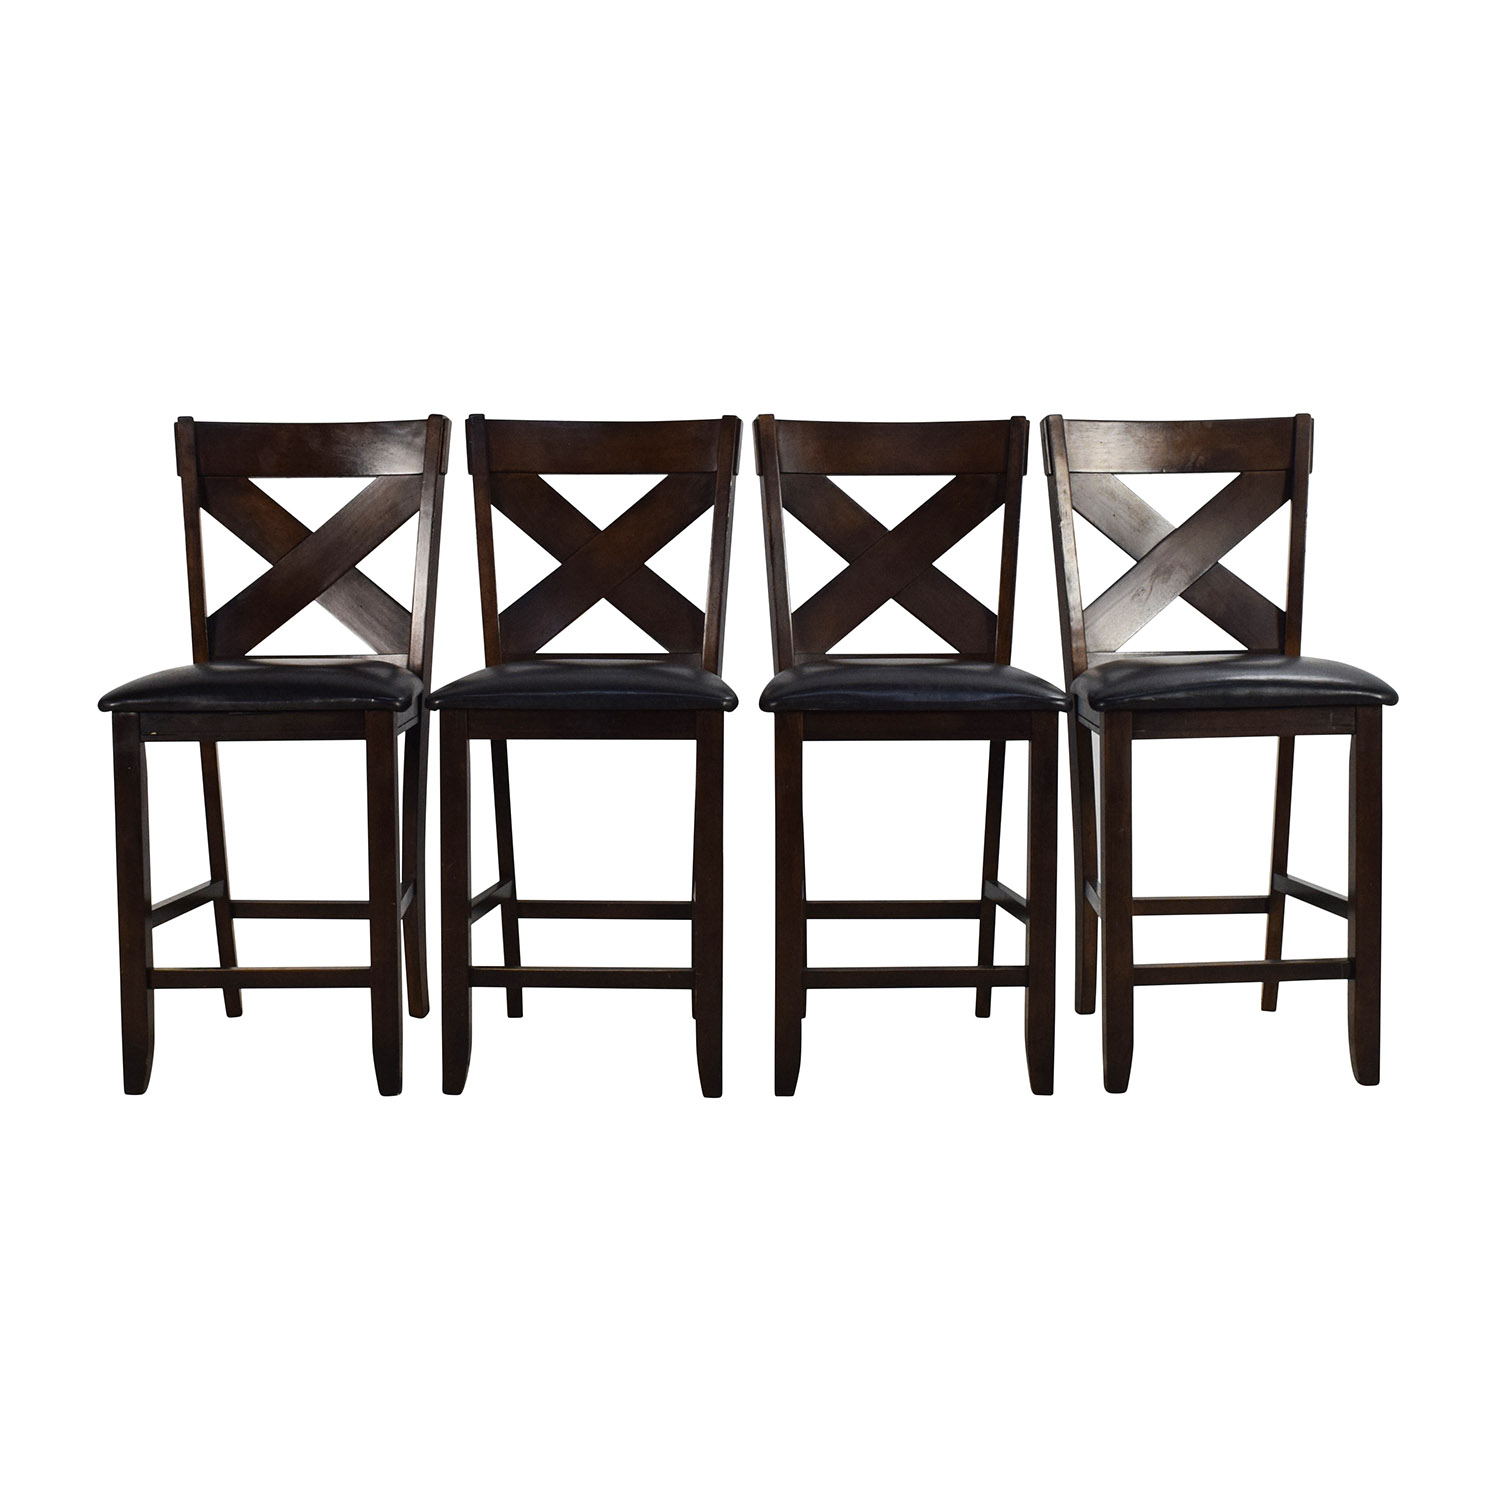 Bobs Furniture X Factor Bar Stool Set Bobs Furniture